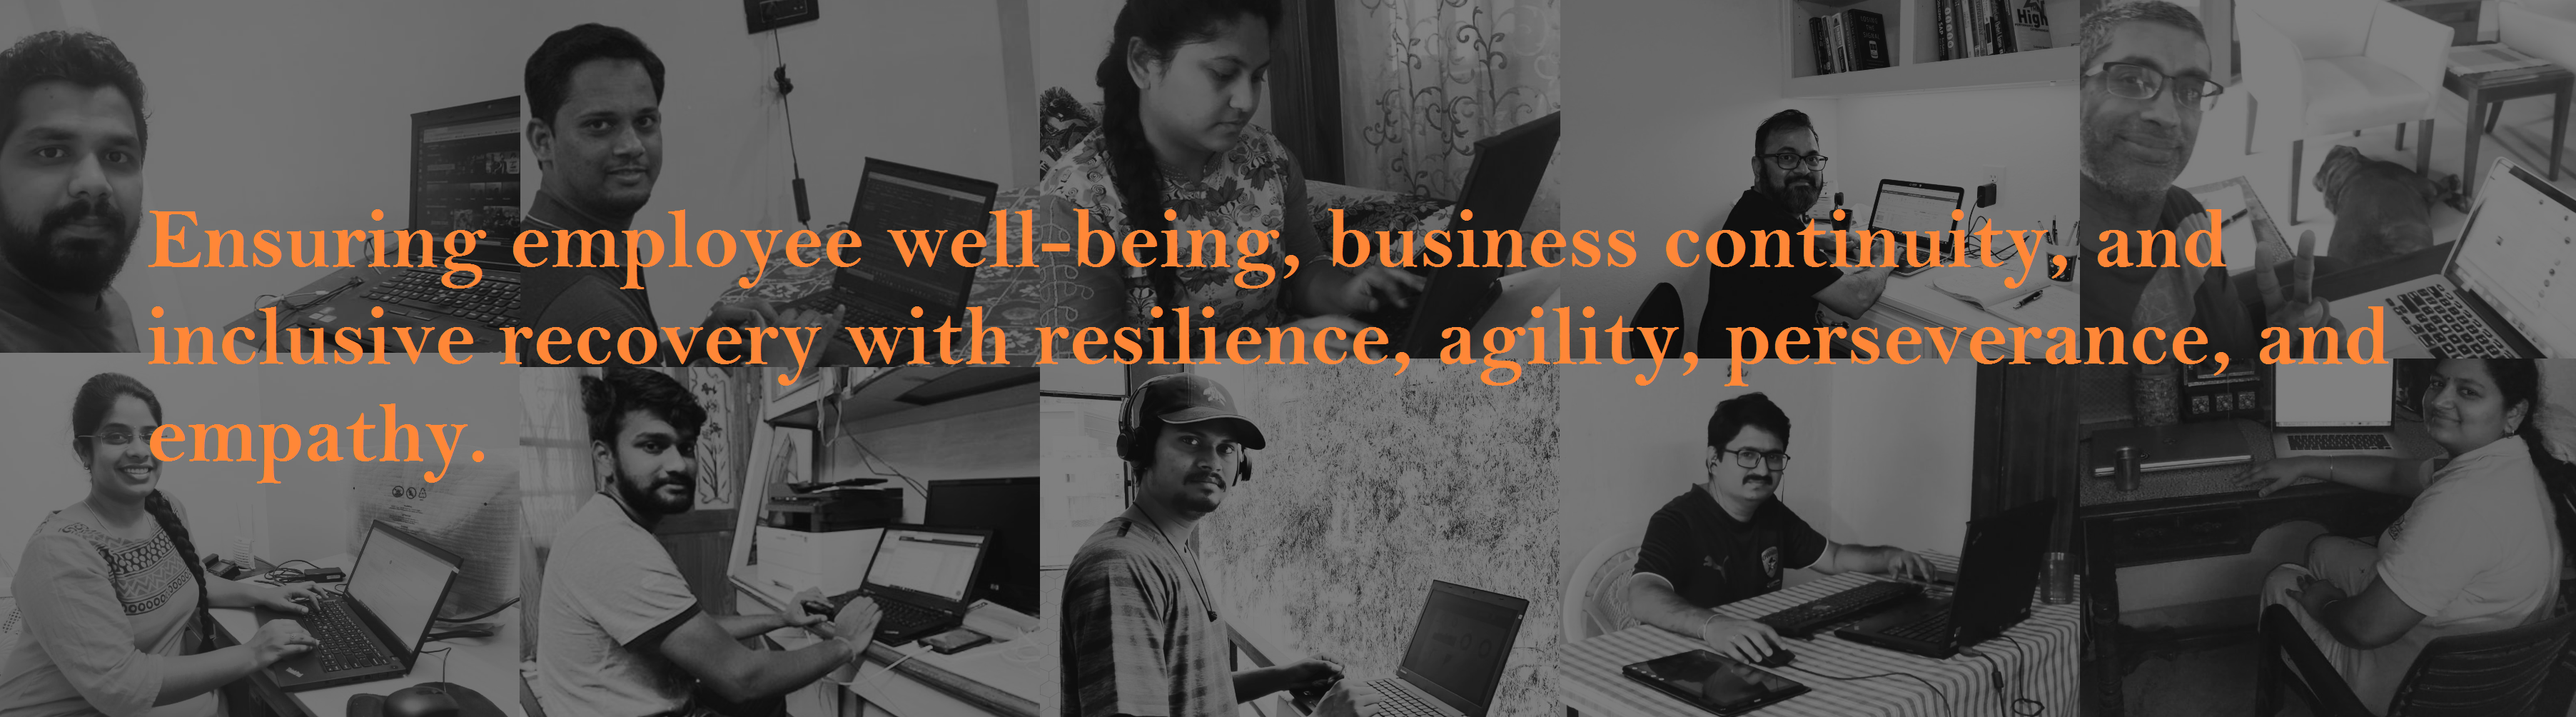 Ensuring employee well-being, business continuity, and inclusive recovery with resilience, agility, perseverance, and empathy